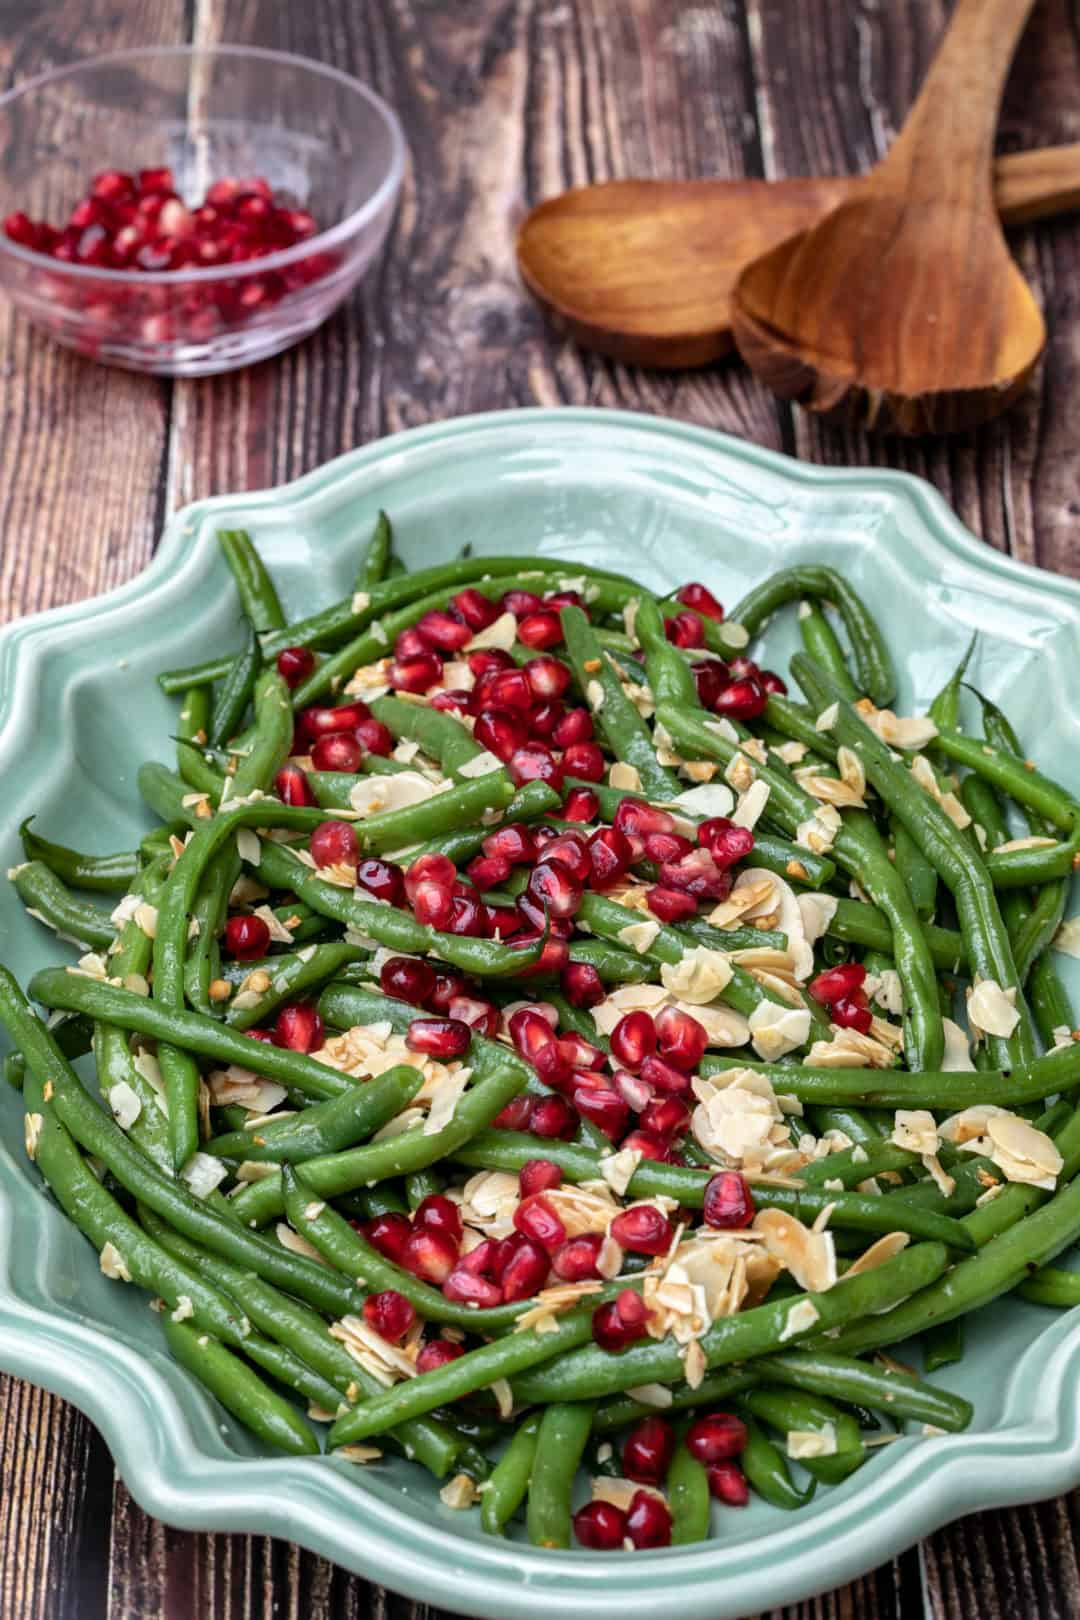 green beans almondine with pomegranate seeds in large platter with seeds and tongs